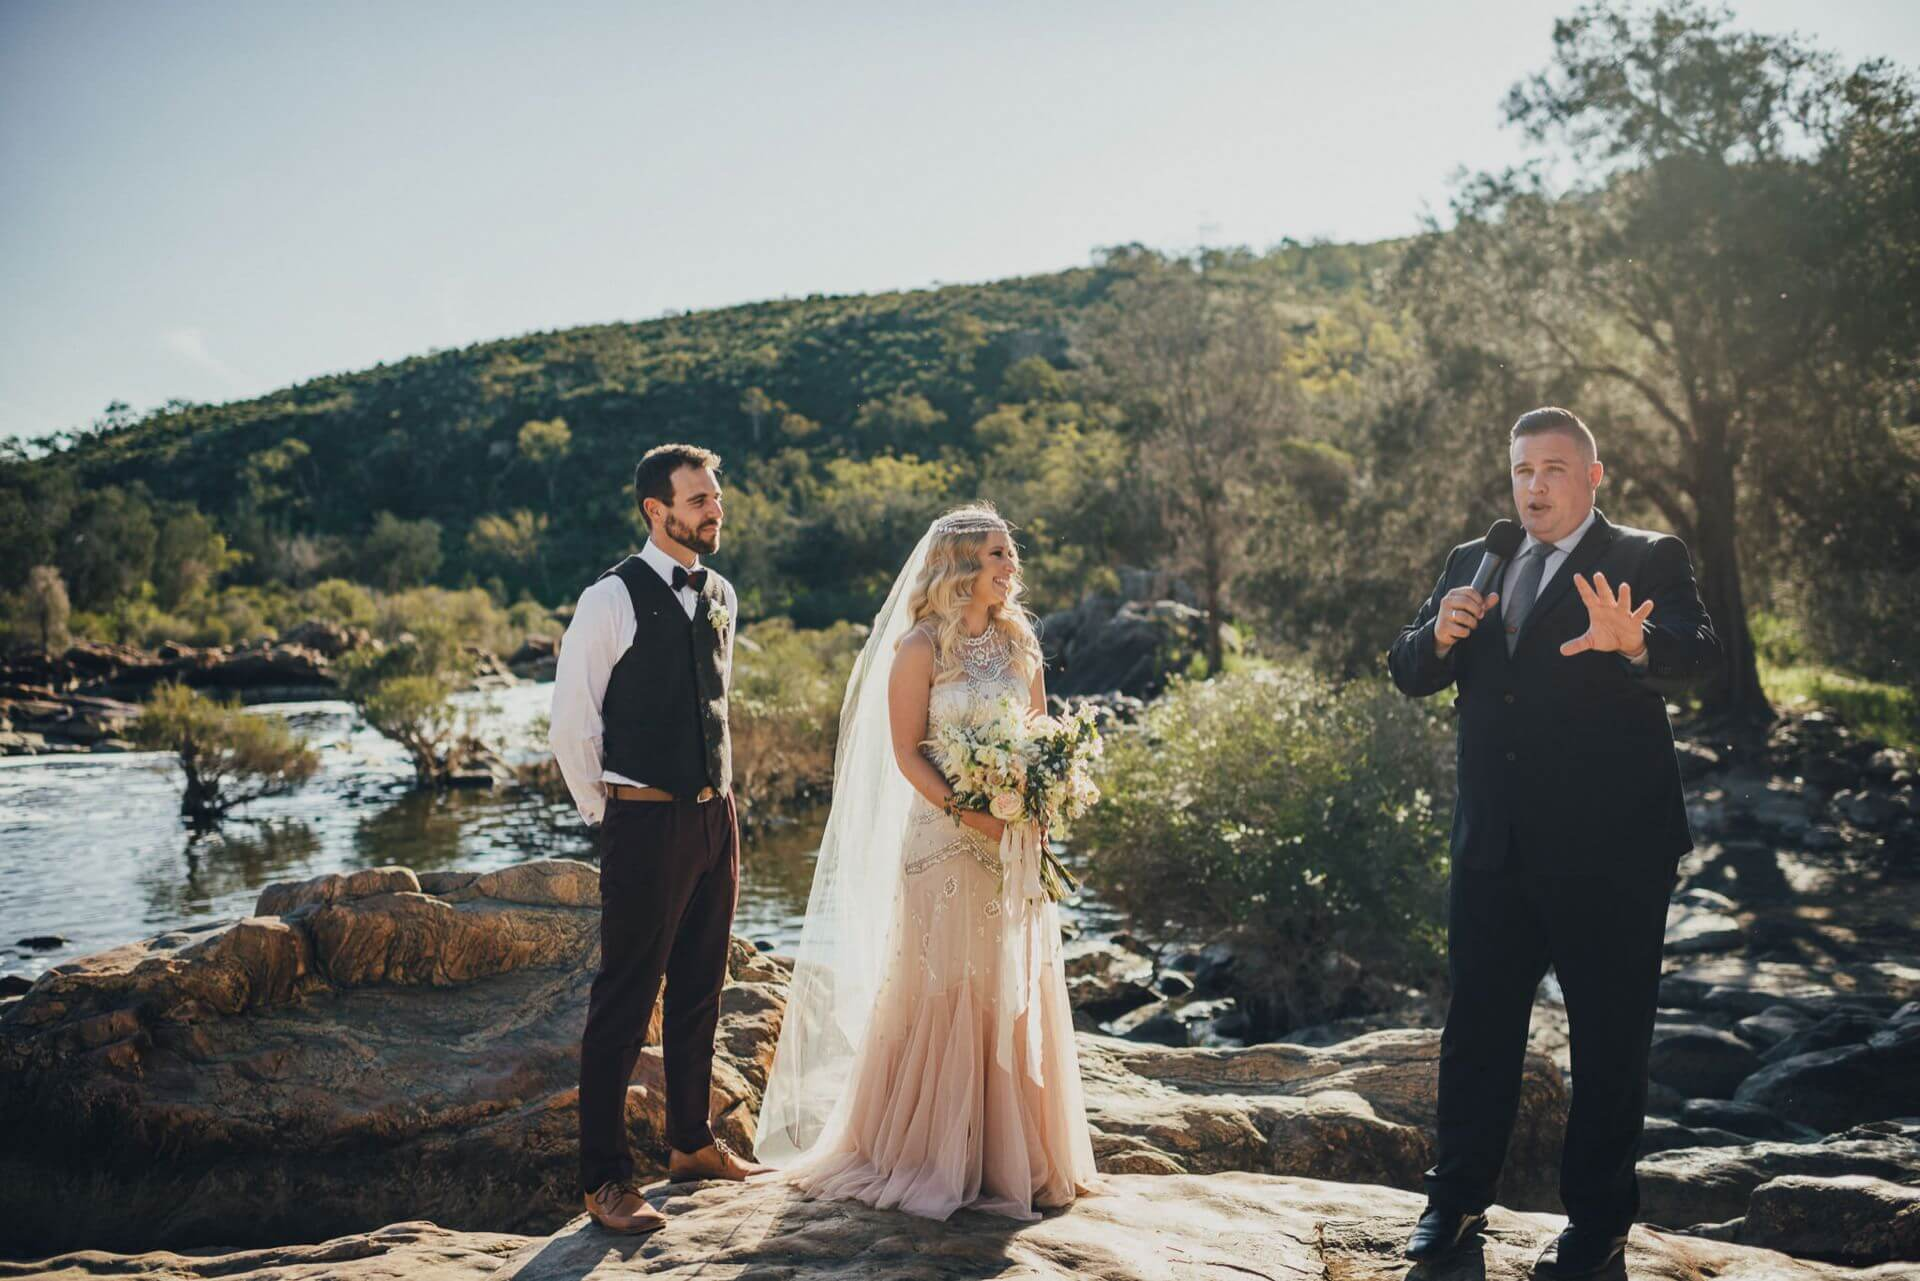 Australian Wedding Gifts For Overseas: How To Legally Elope Overseas And In Australia